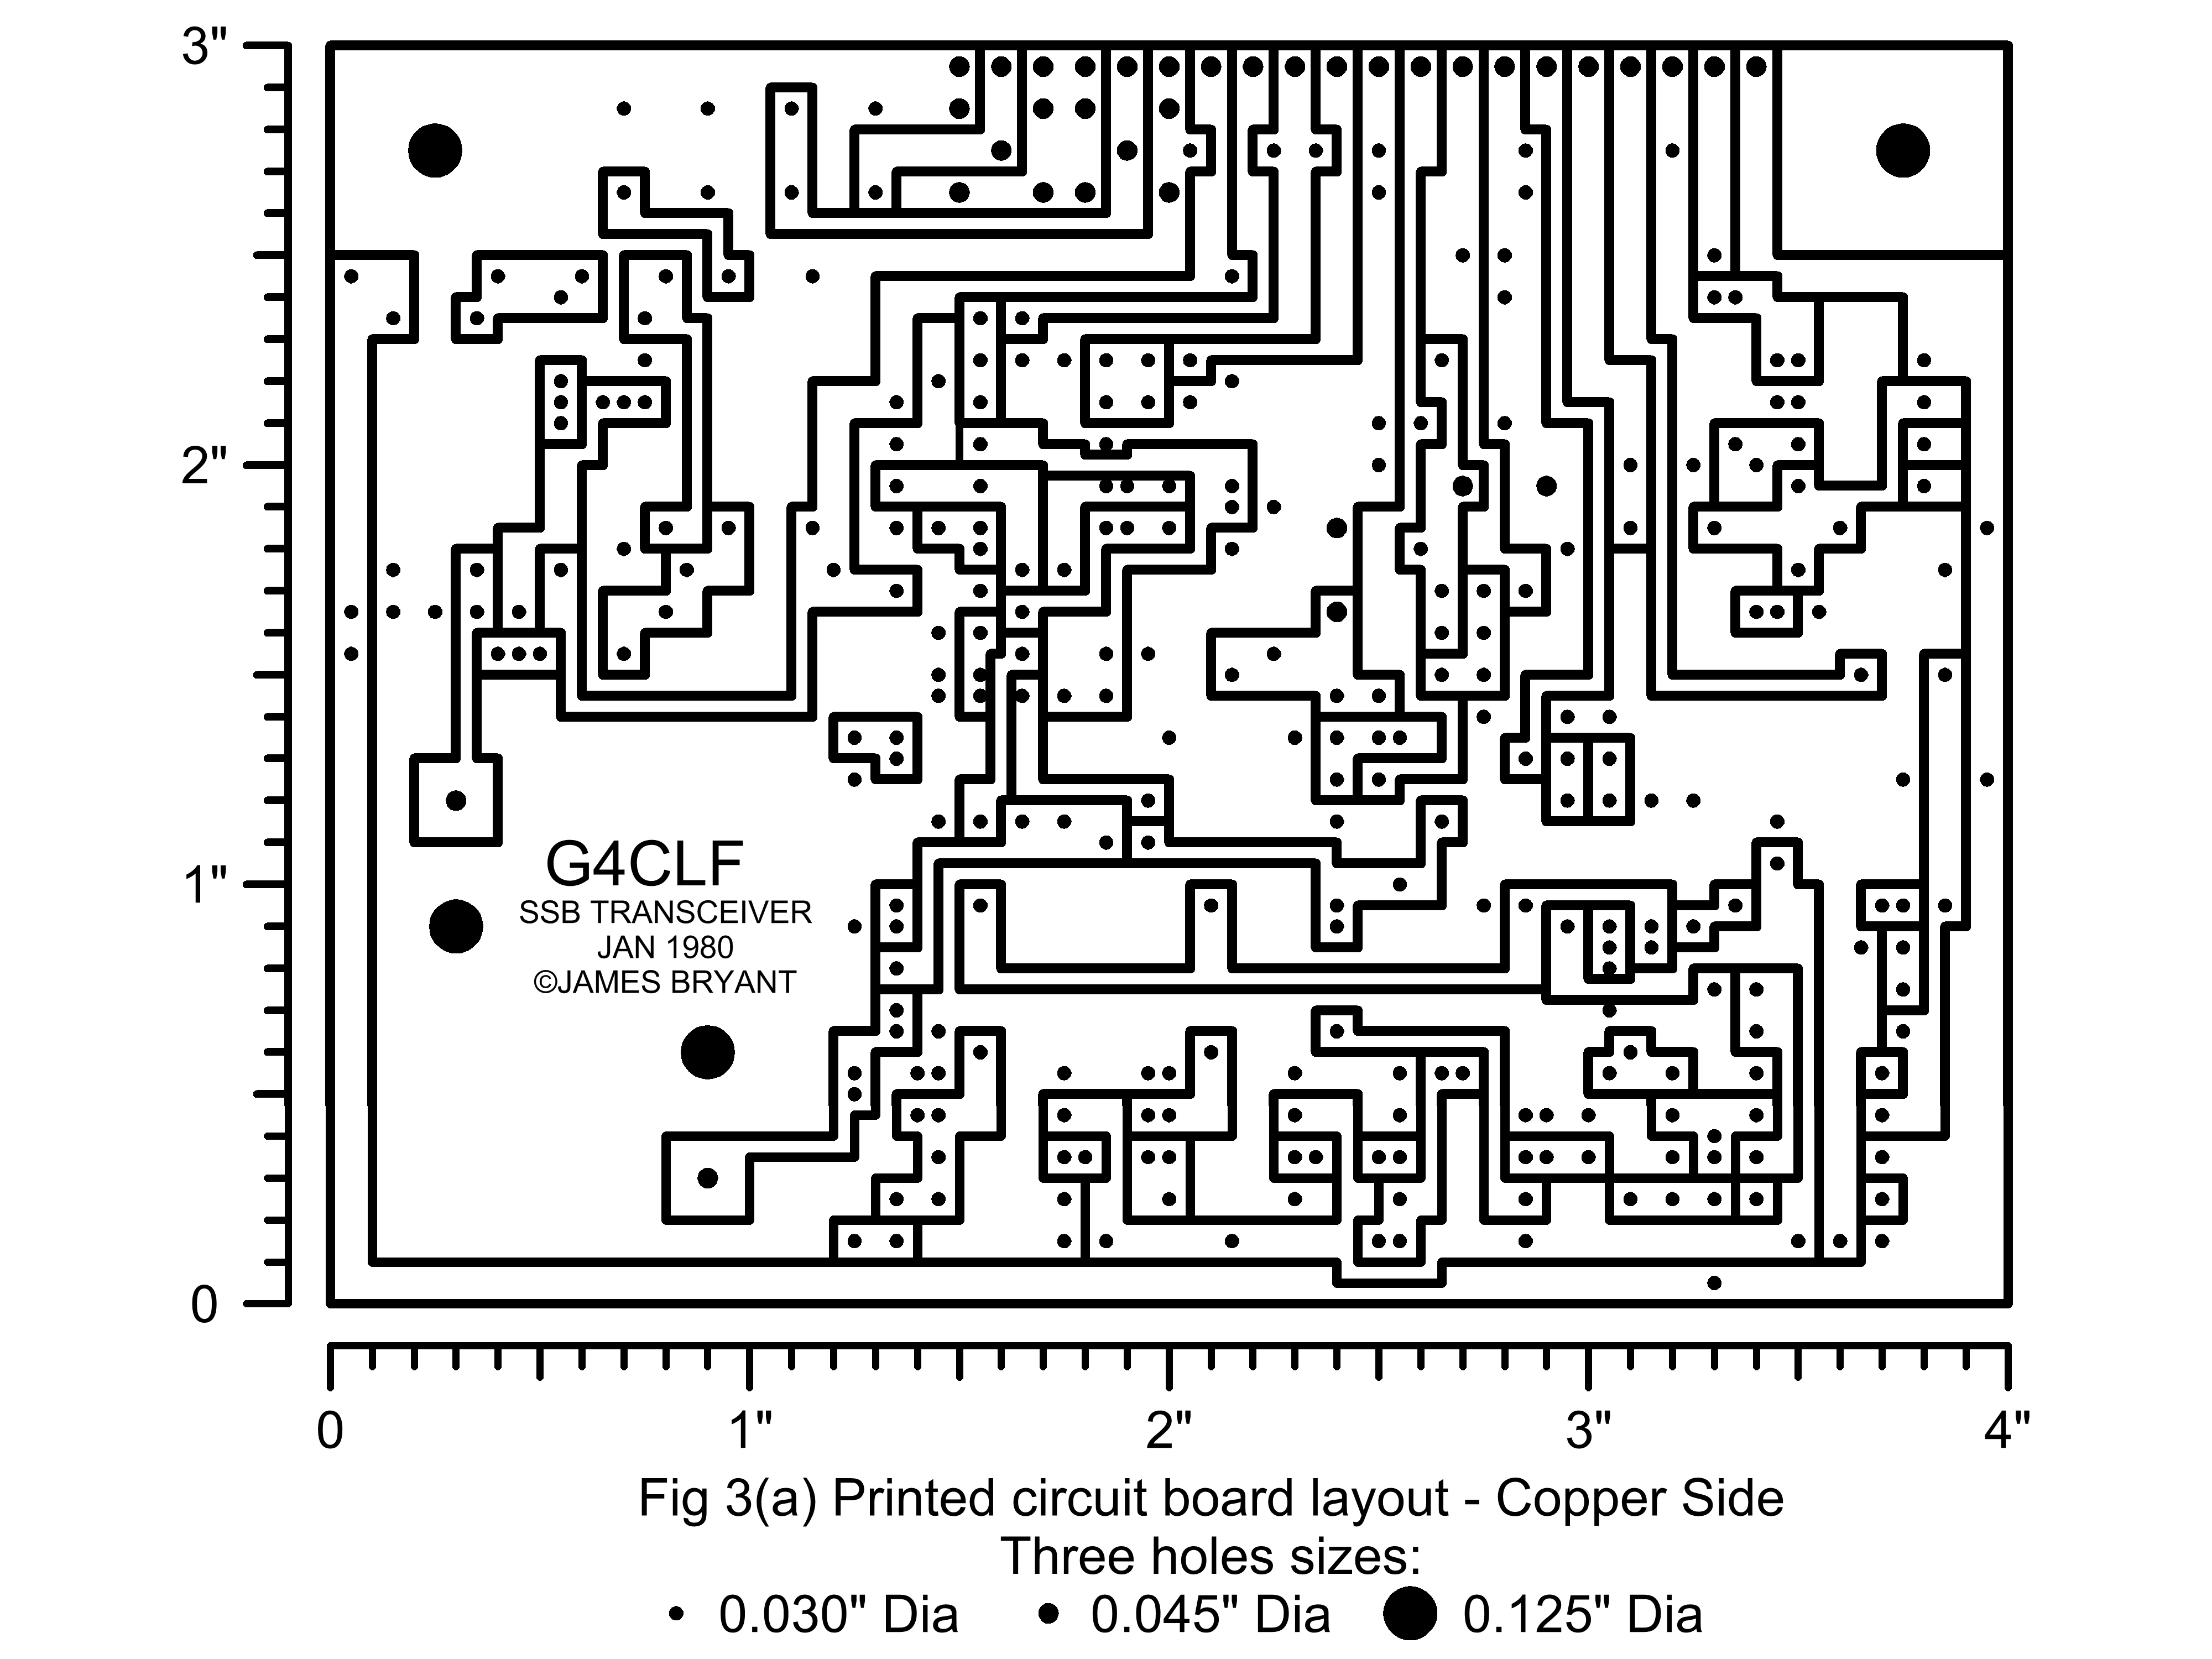 The G4clf Transceiver Board S Meter Circuit Diagram Printed Layout For This Is Shown In Fig 3 A And Component Placing B Drilling Detail